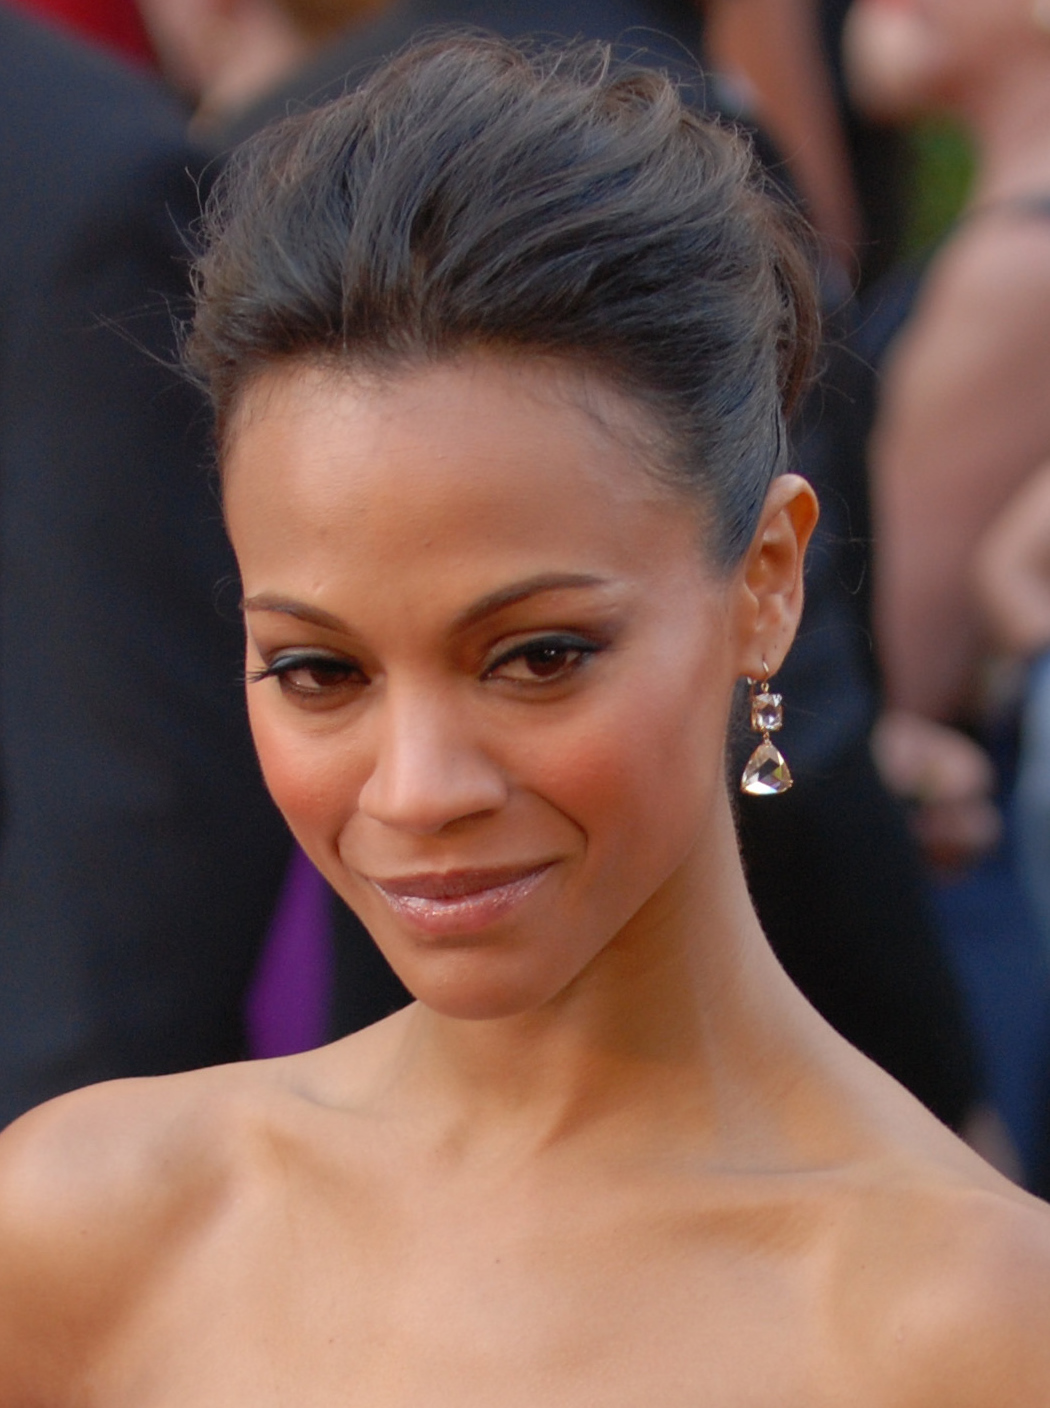 zoe saldana sisterszoe saldana gif, zoe saldana avatar, zoe saldana 2016, zoe saldana vk, zoe saldana gif hunt, zoe saldana style, zoe saldana фильмы, zoe saldana marco perego, zoe saldana фото, zoe saldana wiki, zoe saldana star trek, zoe saldana movies, zoe saldana hot photo, zoe saldana sisters, zoe saldana legend, zoe saldana кинопоиск, zoe saldana 2017, zoe saldana png, zoe saldana wikipedia, zoe saldana twitter